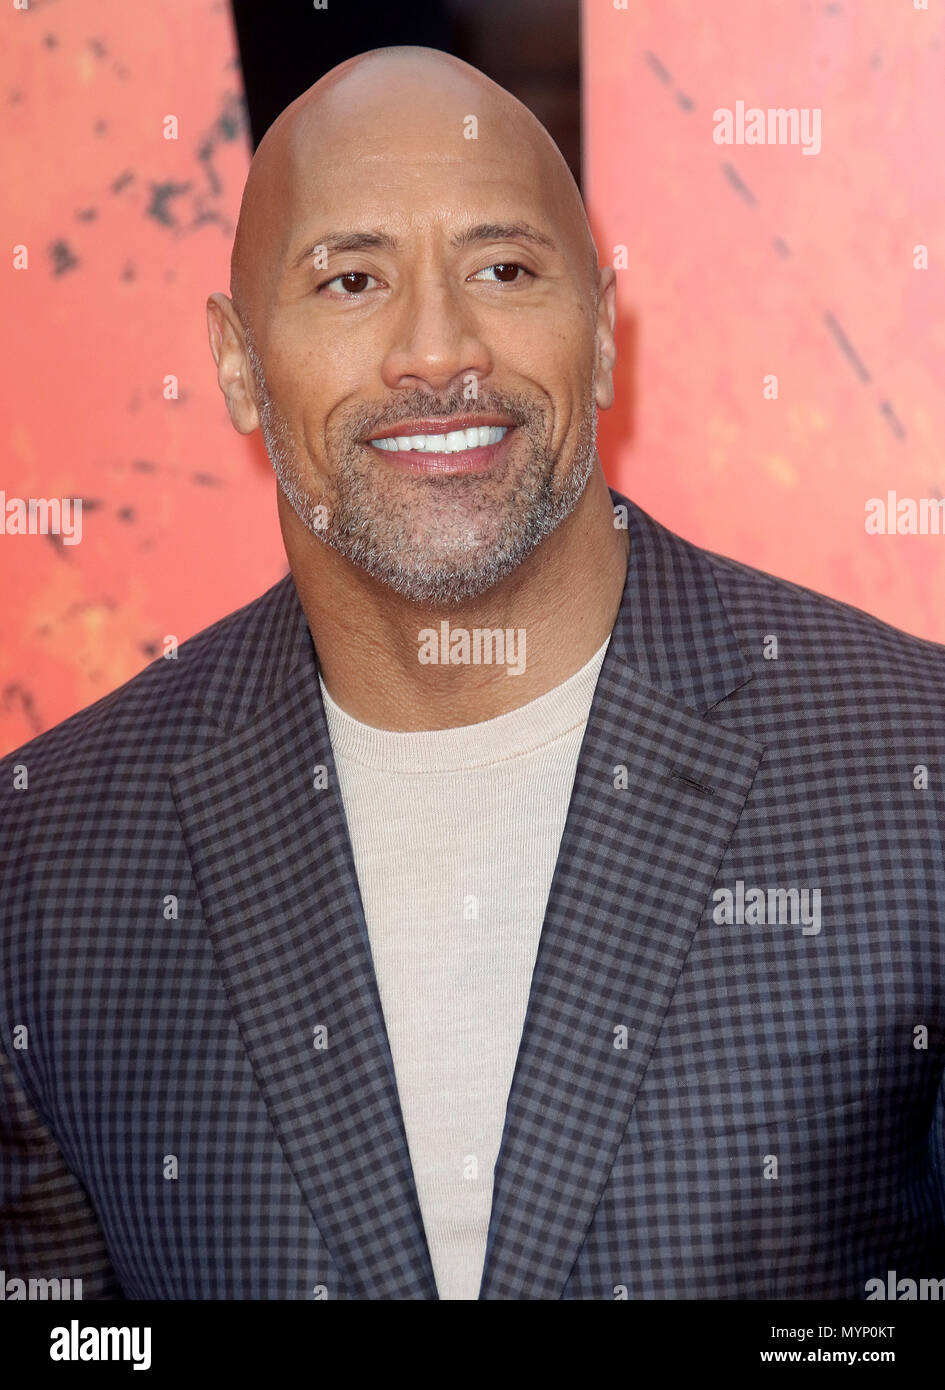 April 11, 2018 - Dwayne Johnson attending Rampage European Premiere at Cineworld Leicester Square in London, England, UK - Stock Image